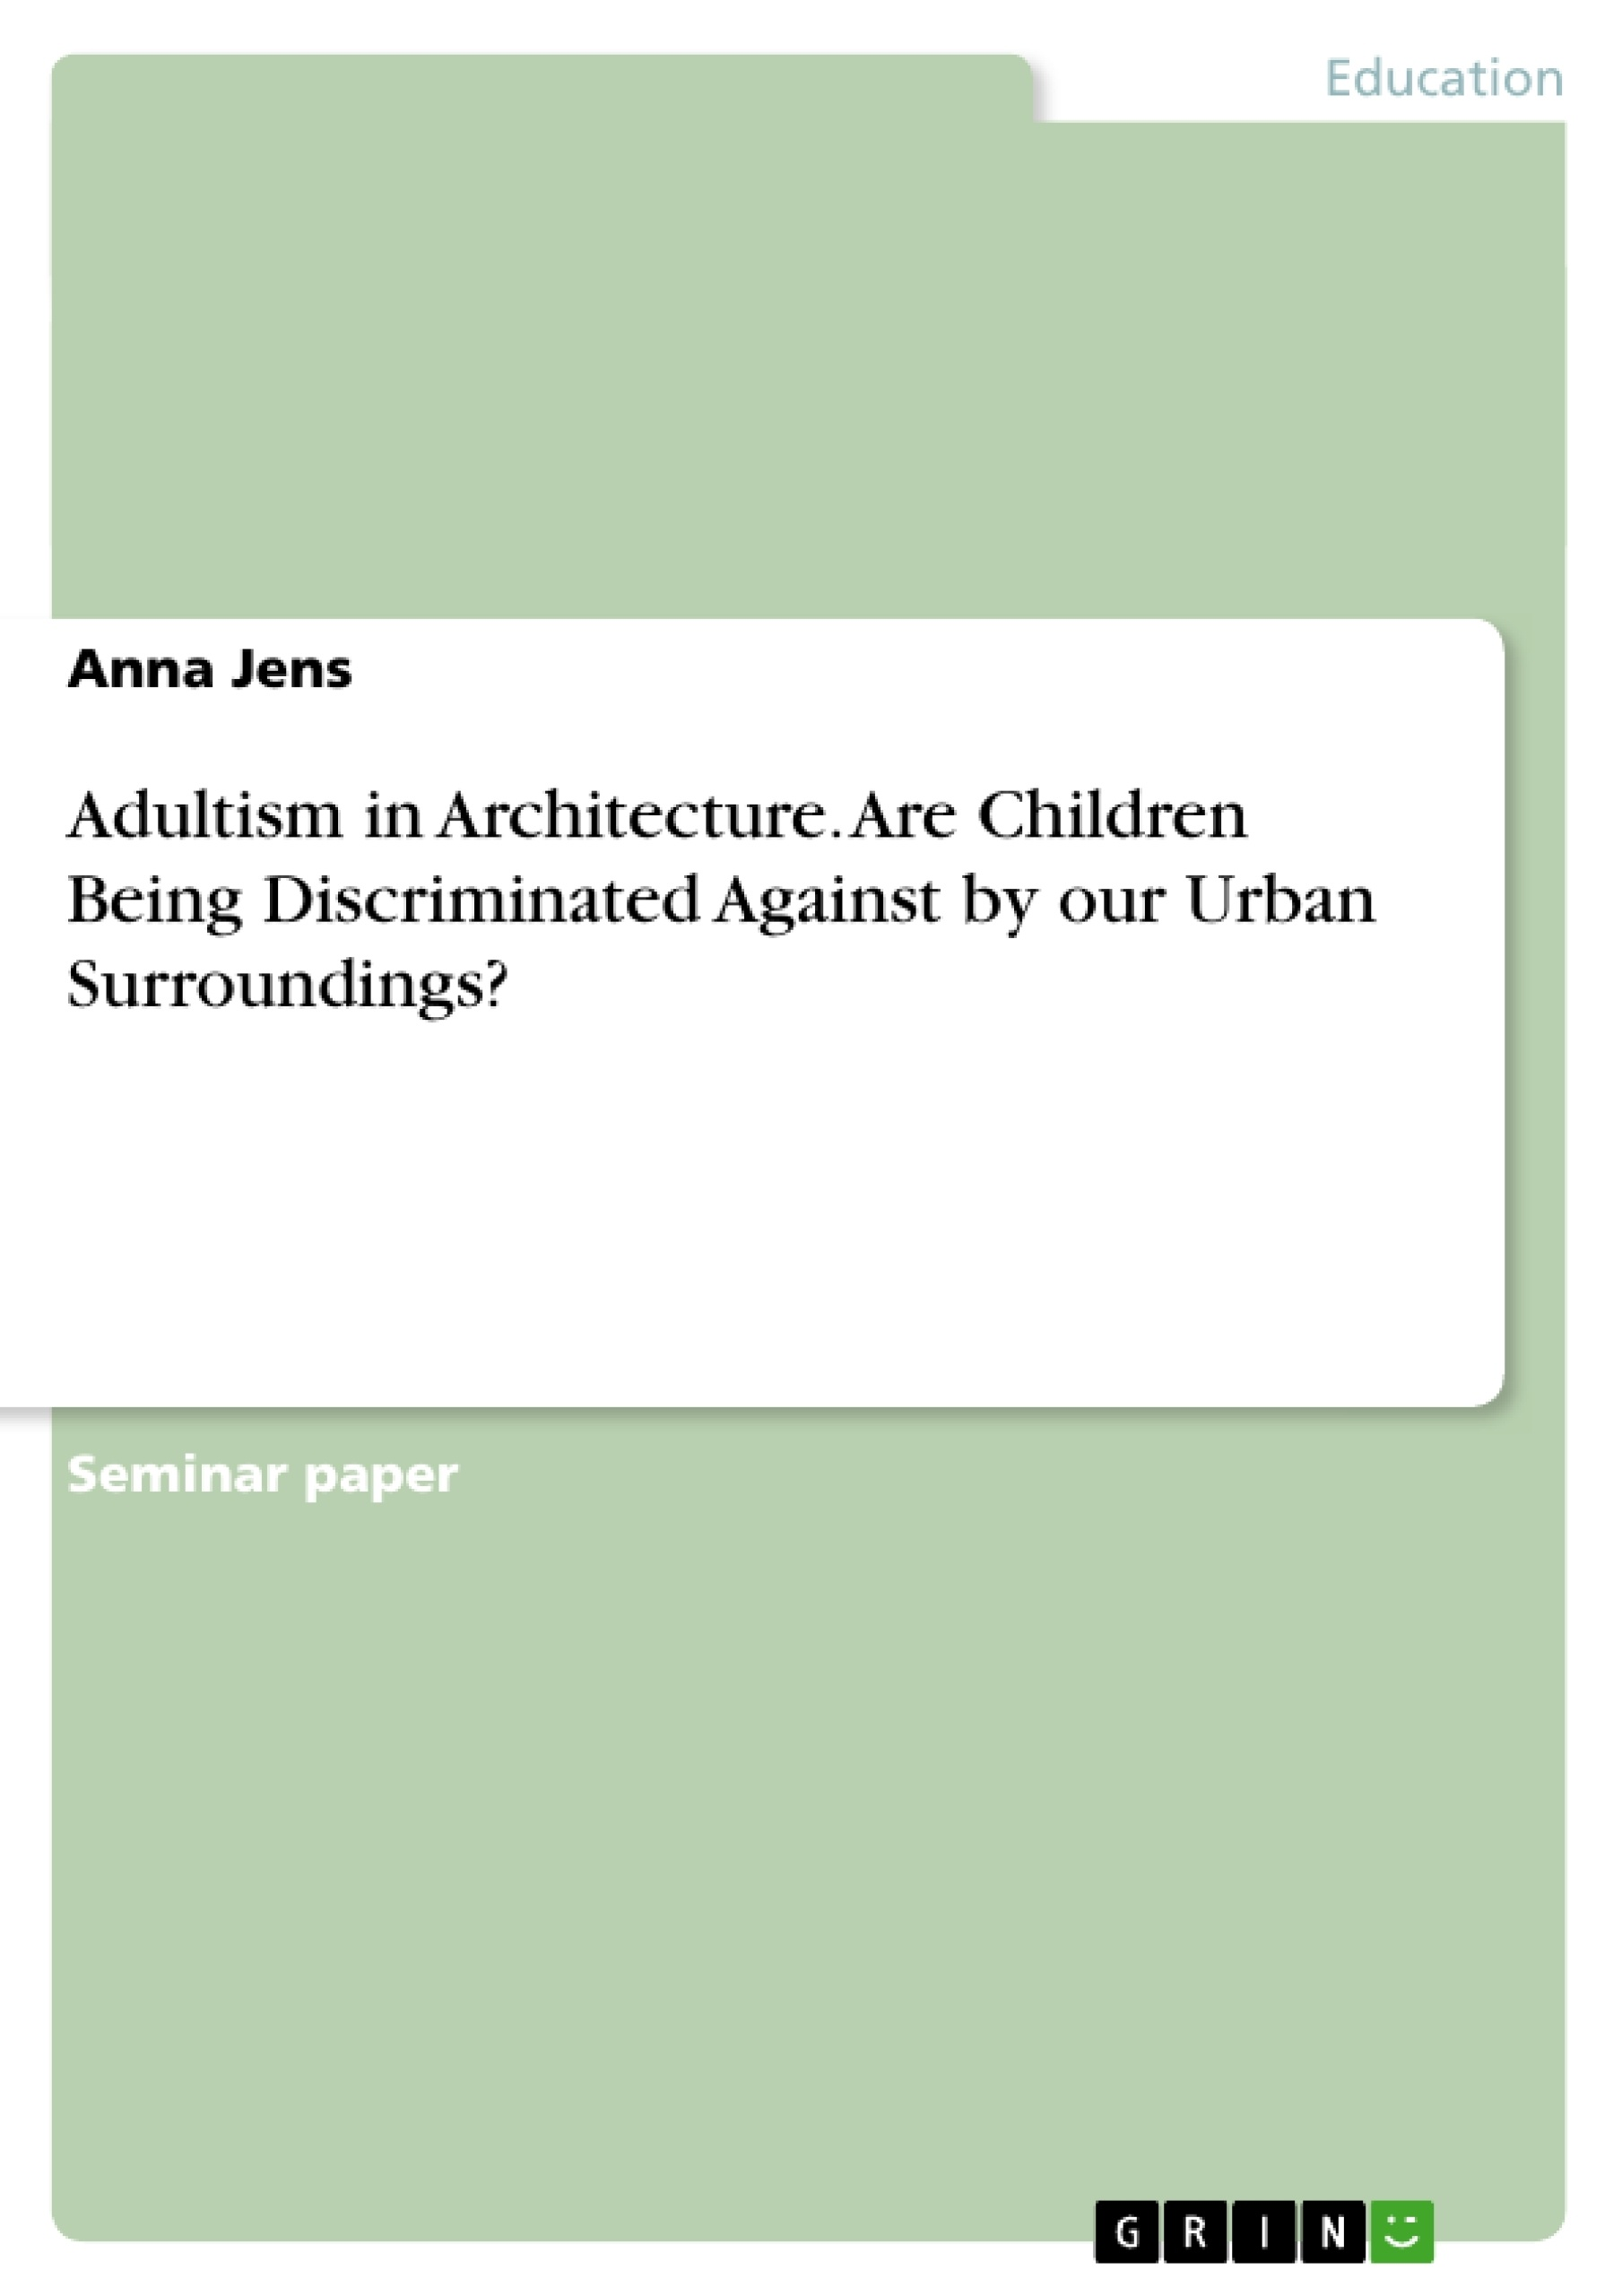 Title: Adultism in Architecture. Are Children Being Discriminated Against by our Urban Surroundings?